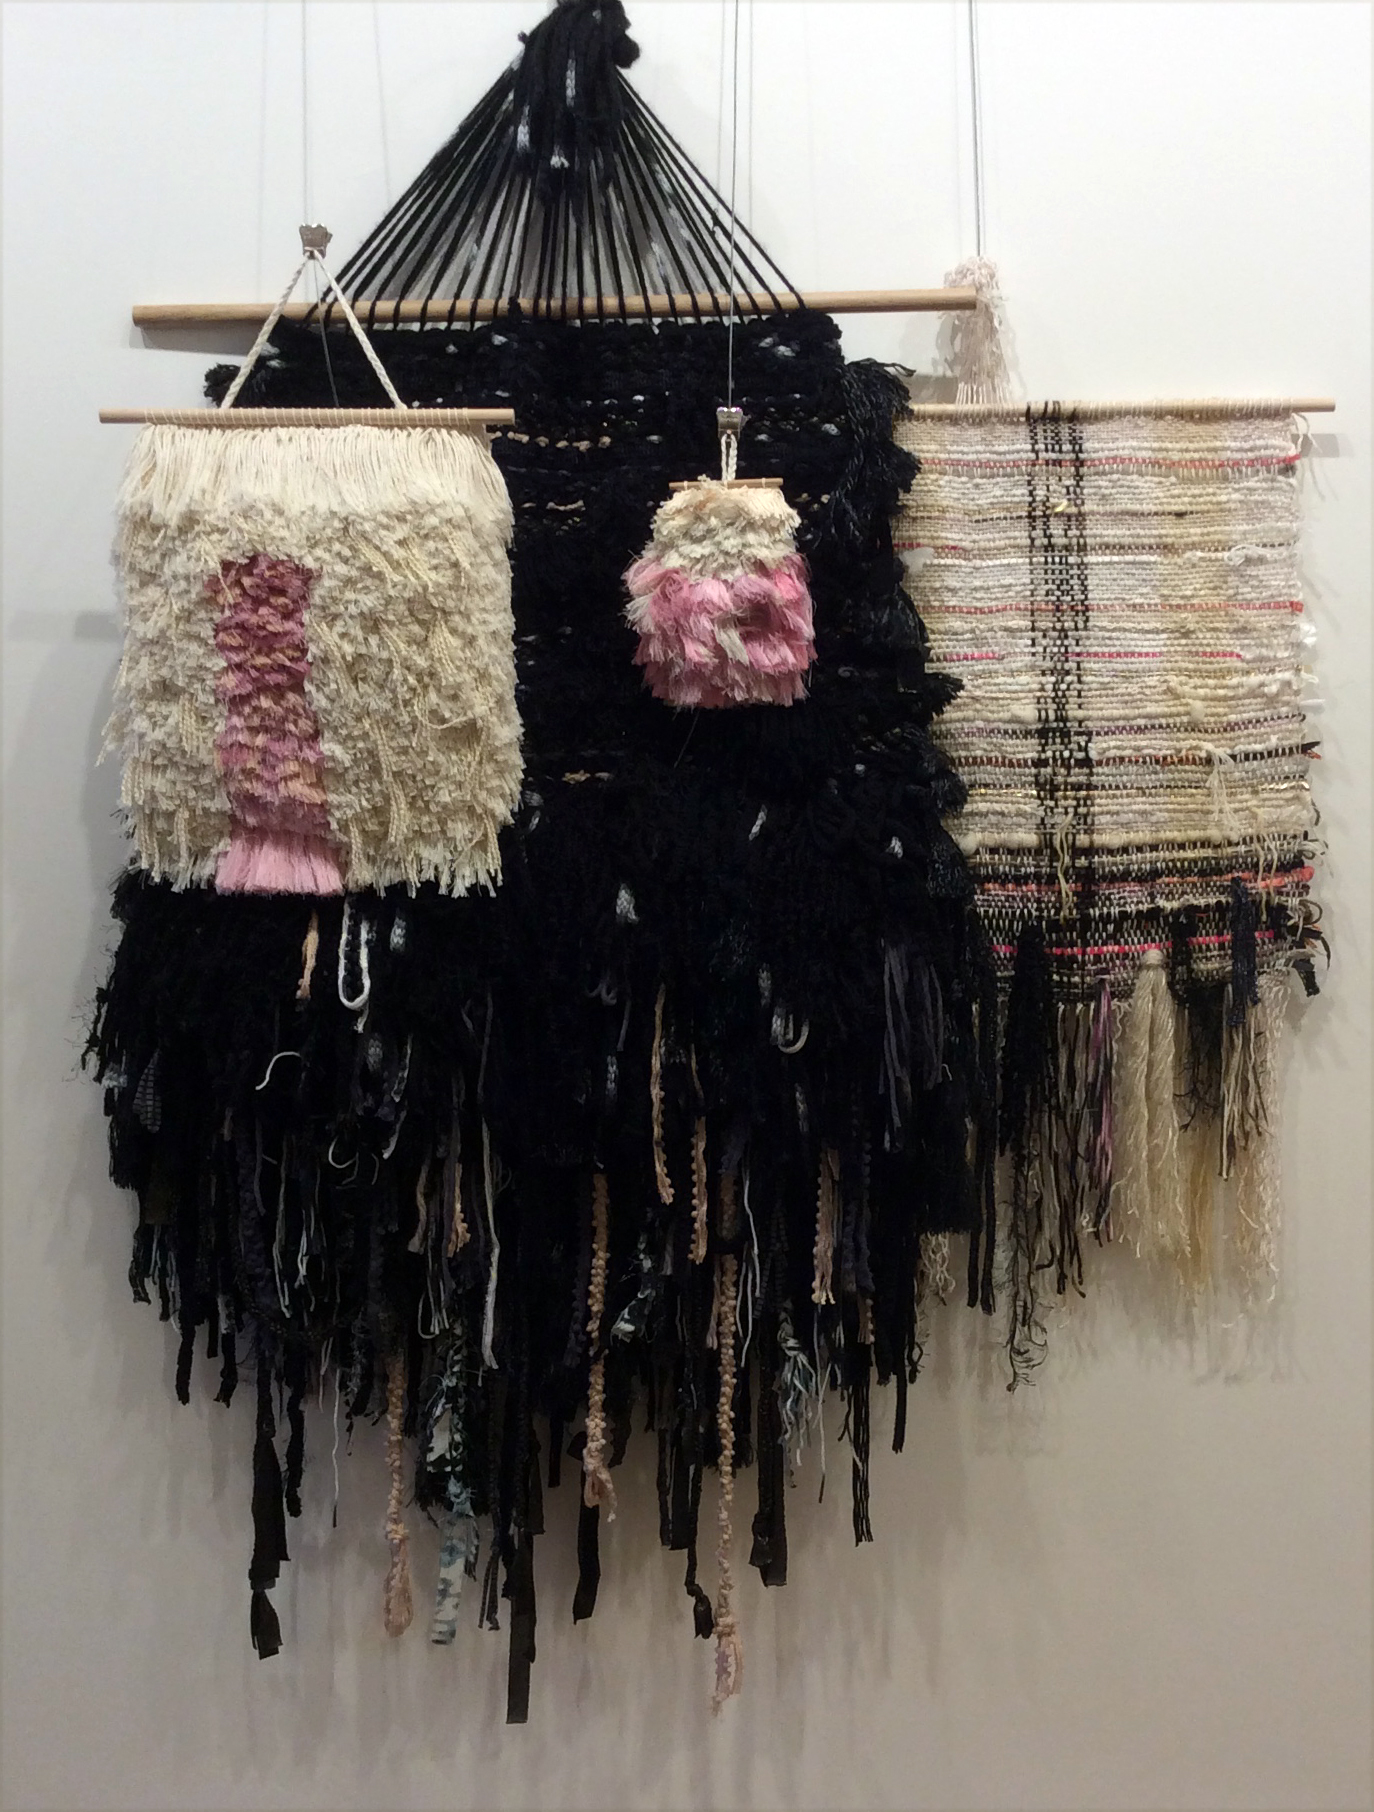 Layered Textural Works